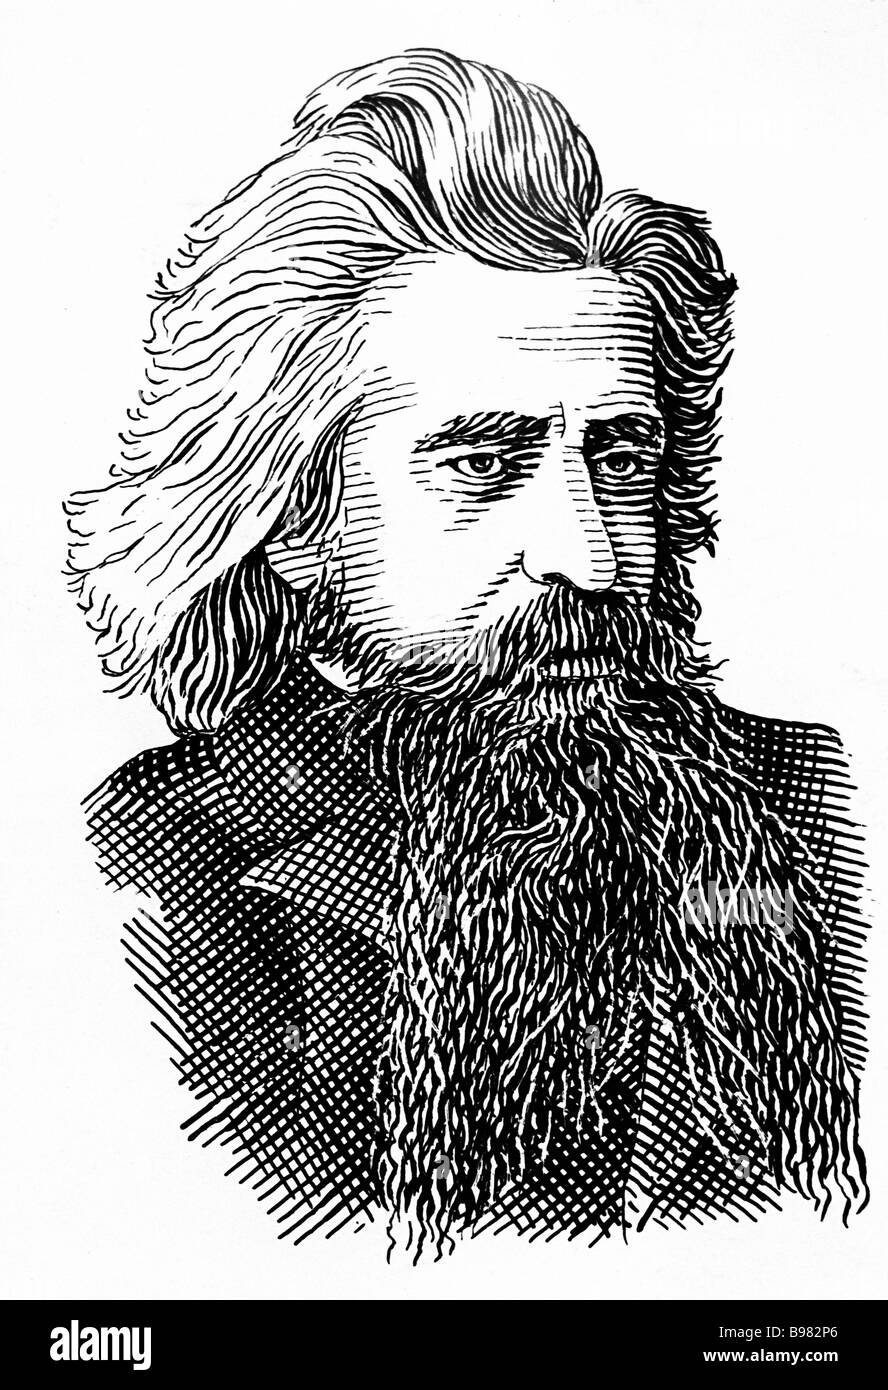 Vladimir Solovyev 1853 1900 major Russian idealist philosopher theologian journalist and Symbolist poet - Stock Image